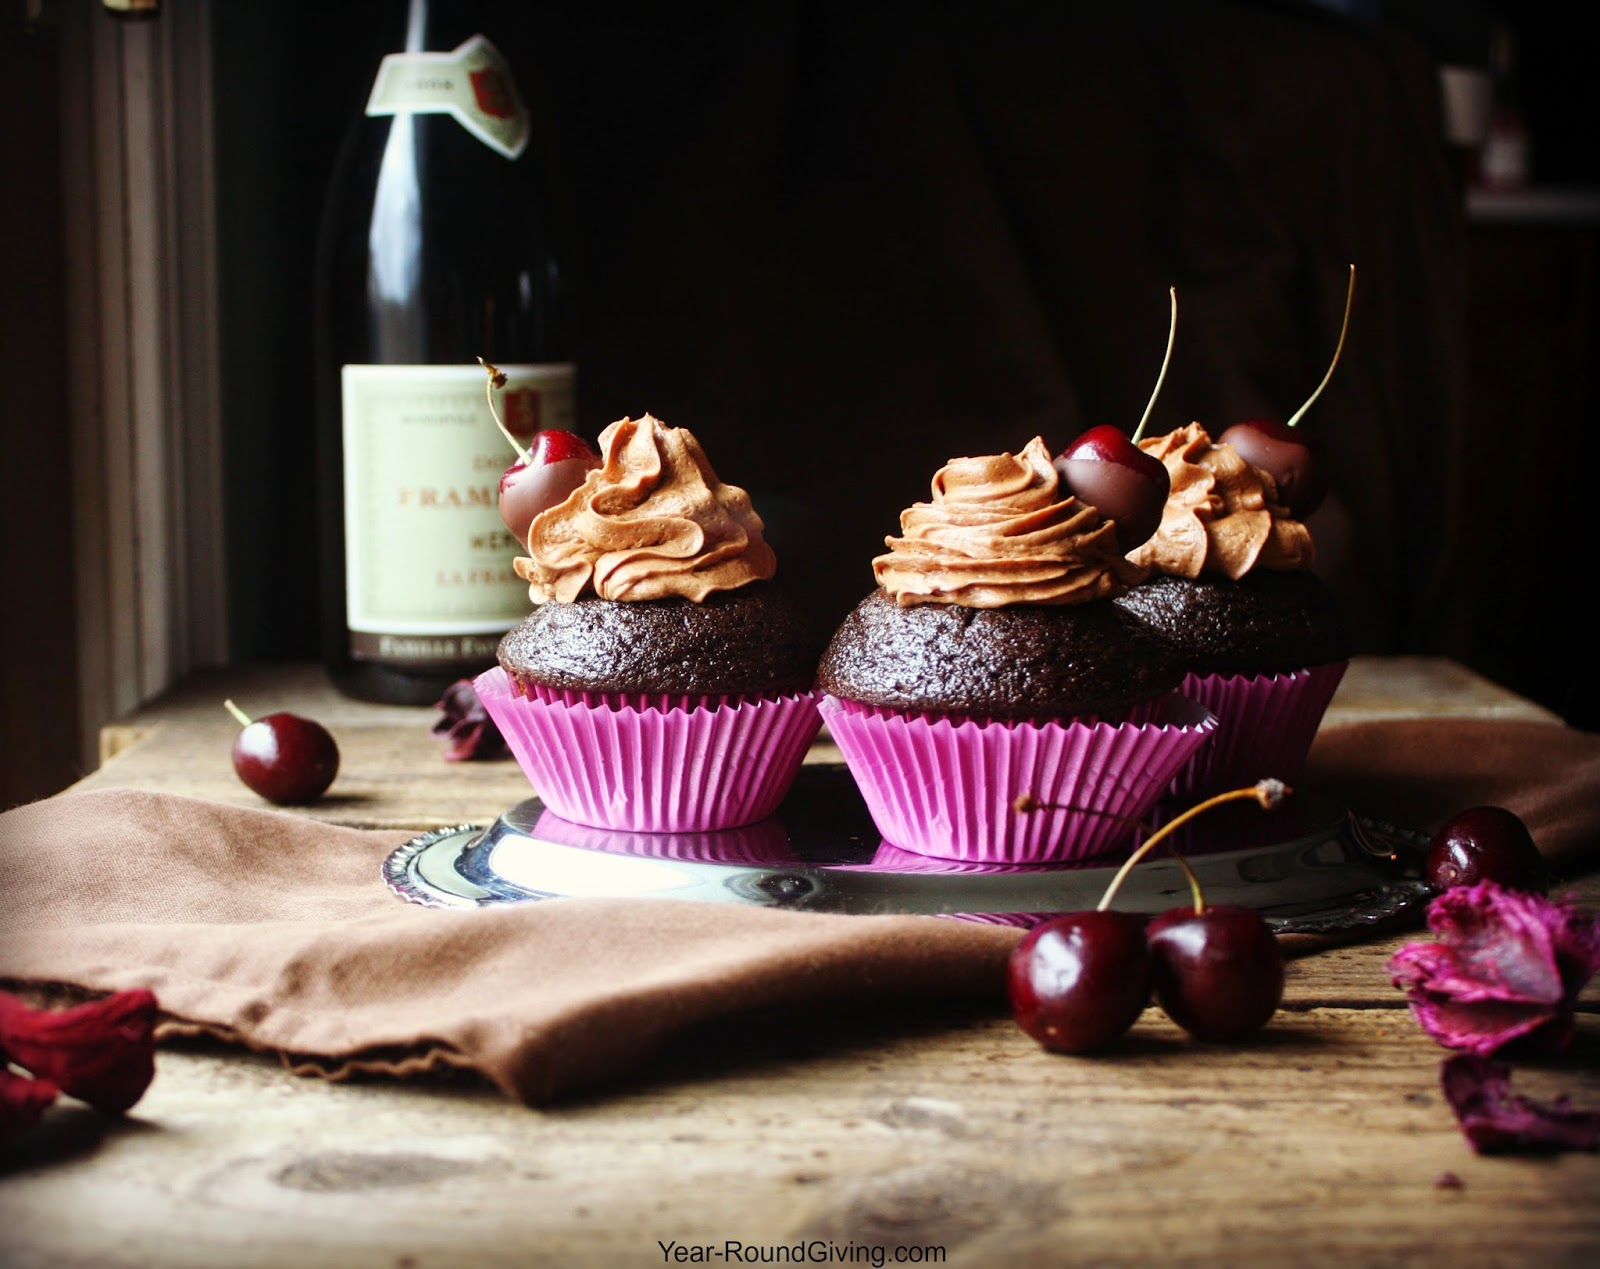 Chocolate Espresso Cupcakes with Chocolate Dipped Cherries